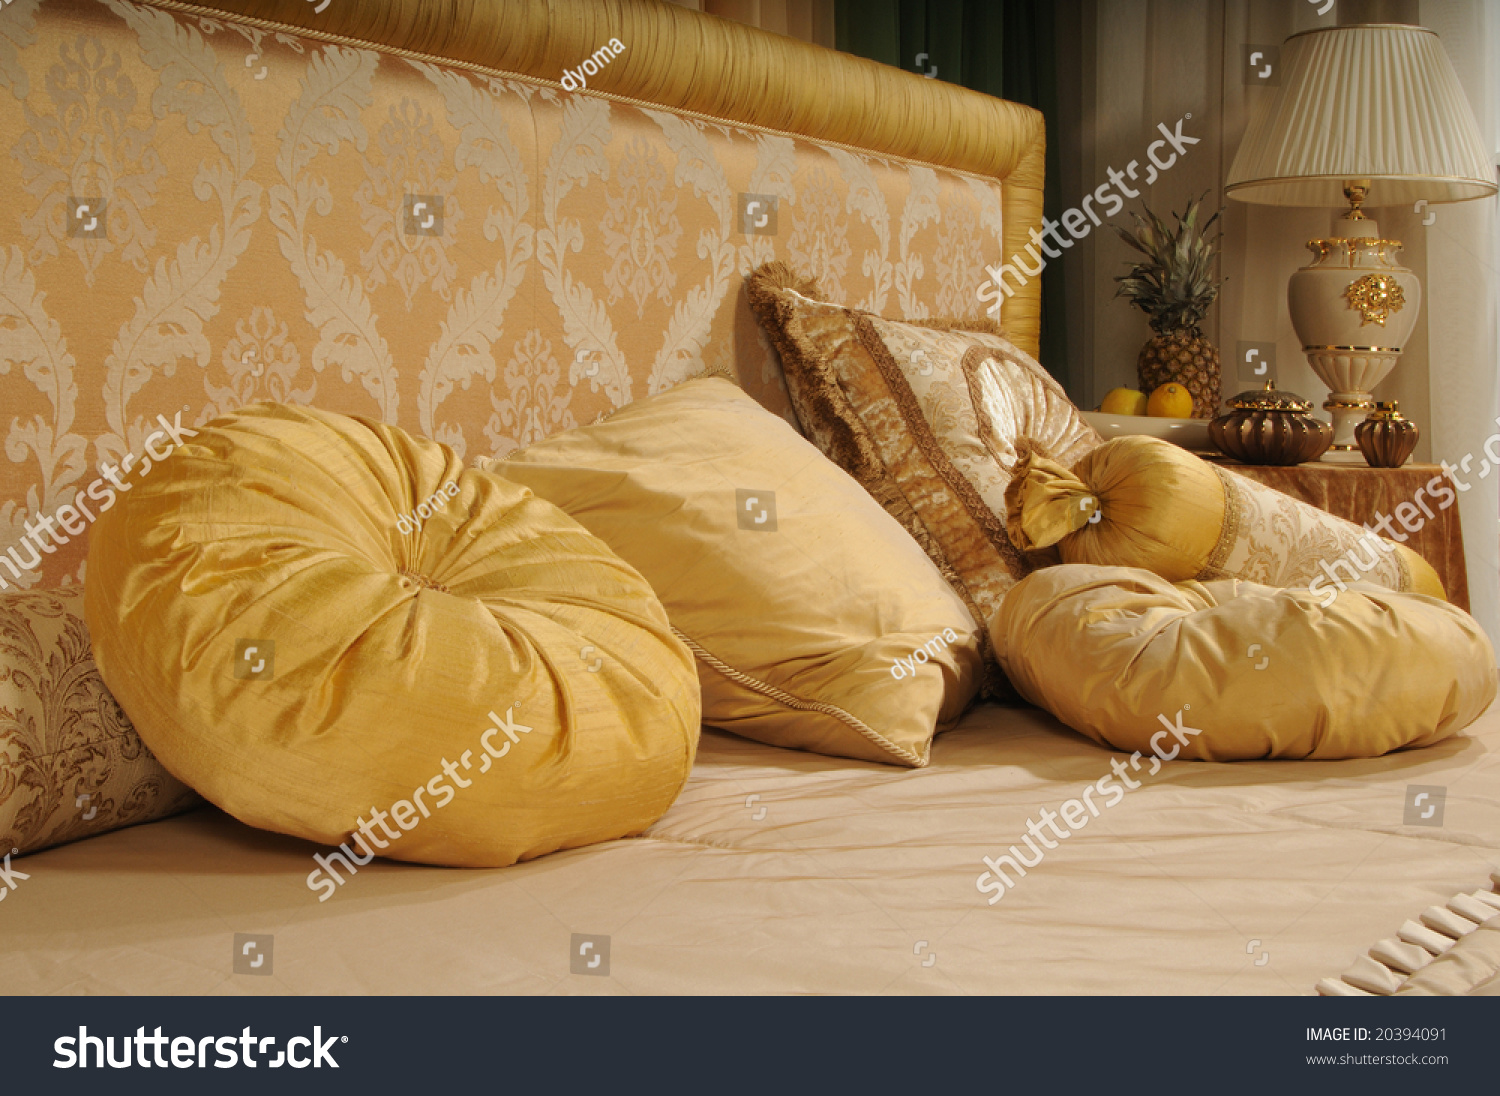 Throw Pillows On The Bed Song : Decorative Pillows On A Bed At A Headboard Stock Photo 20394091 : Shutterstock